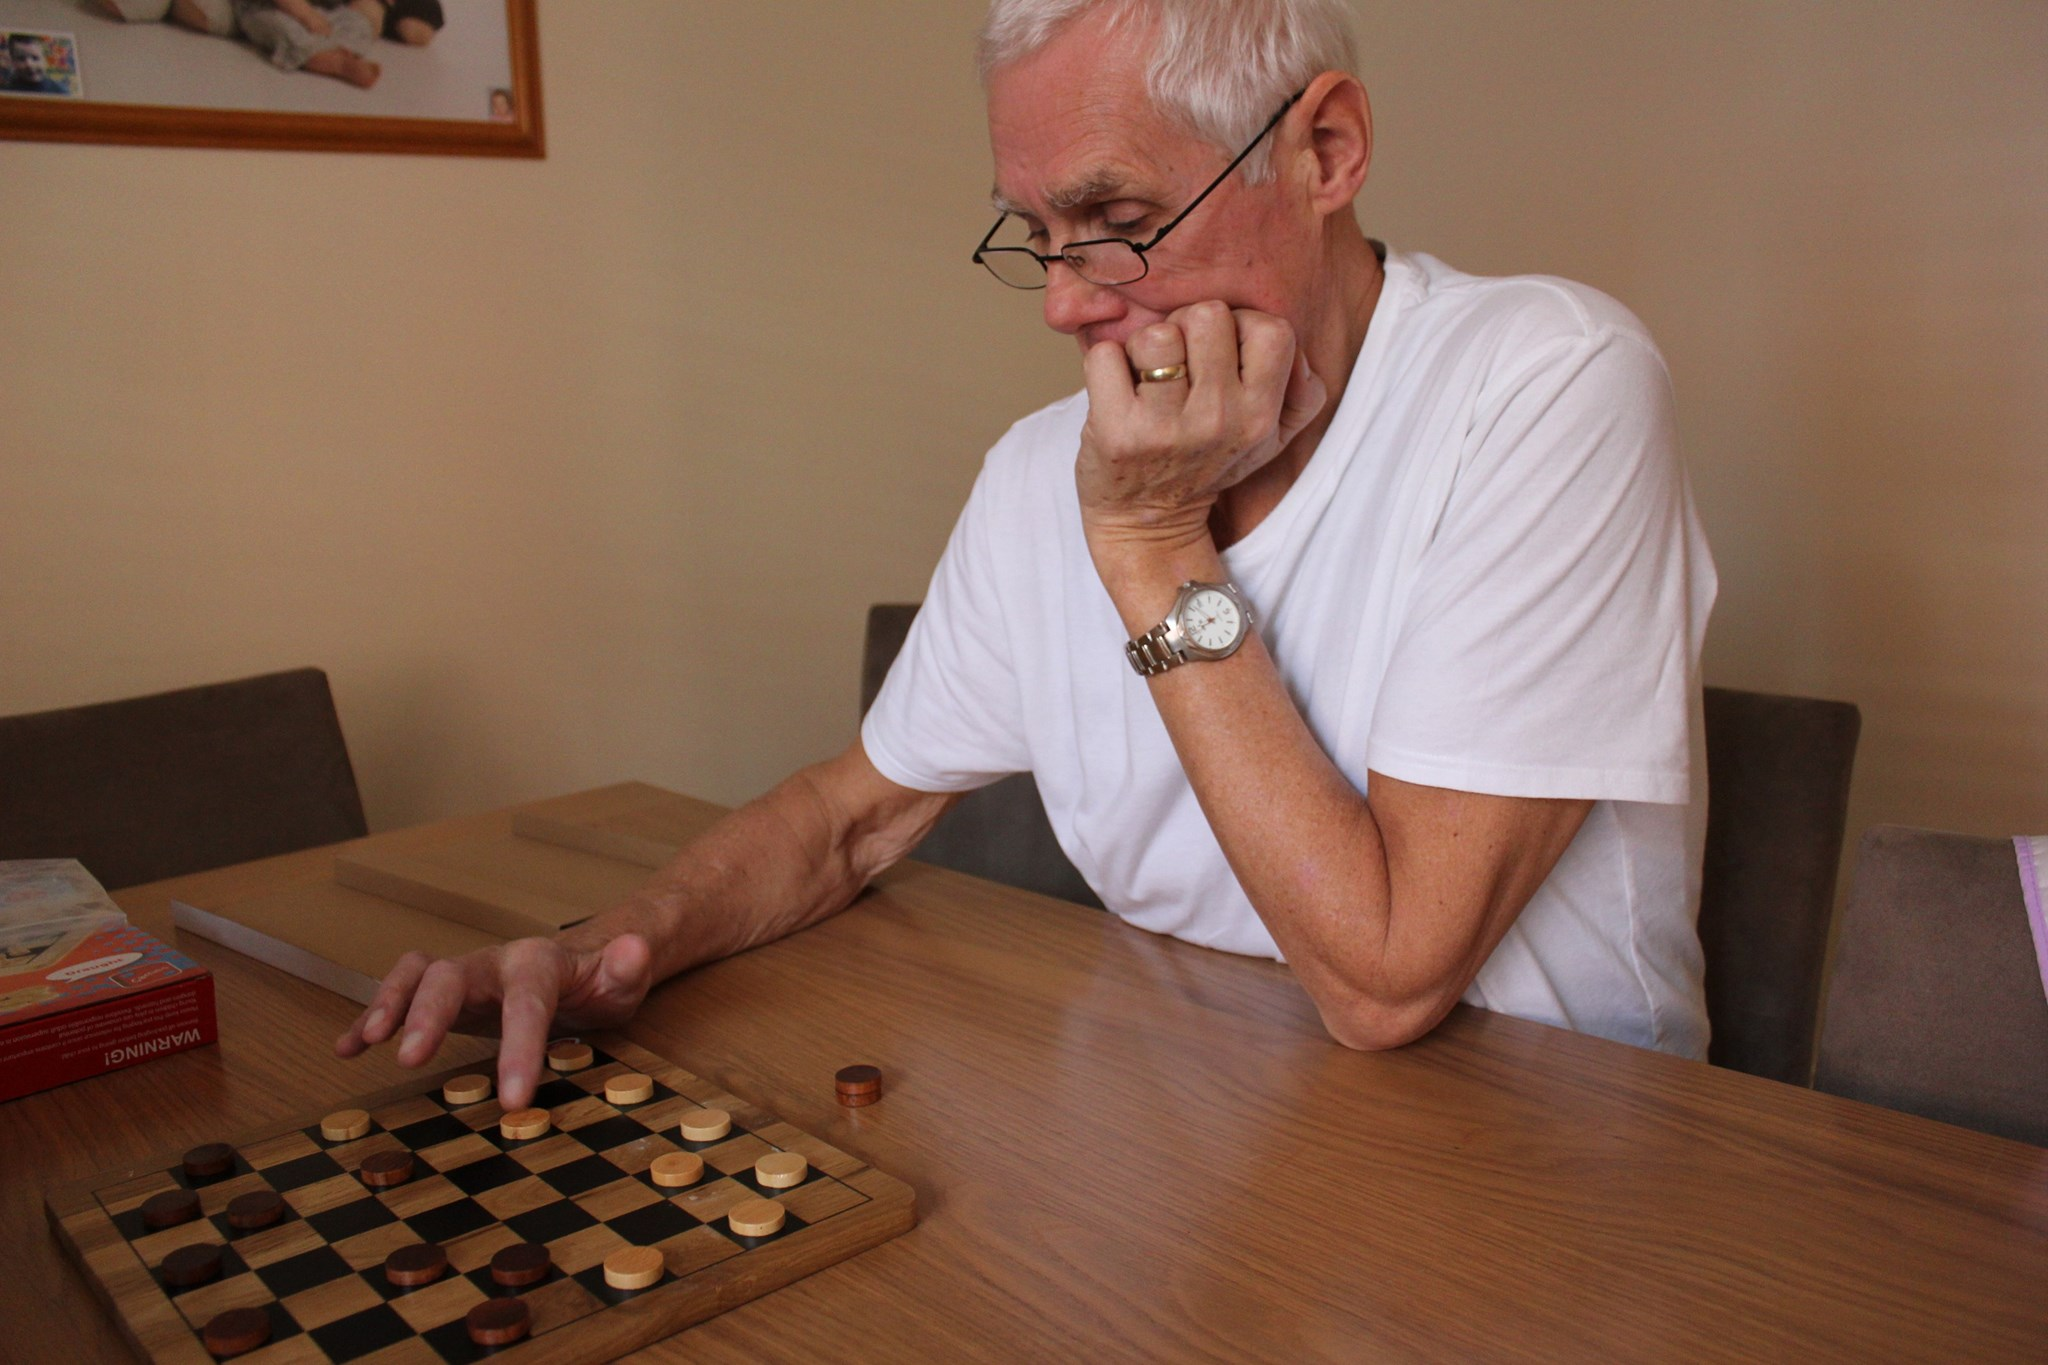 Playing Draughts with his grandson Ryan